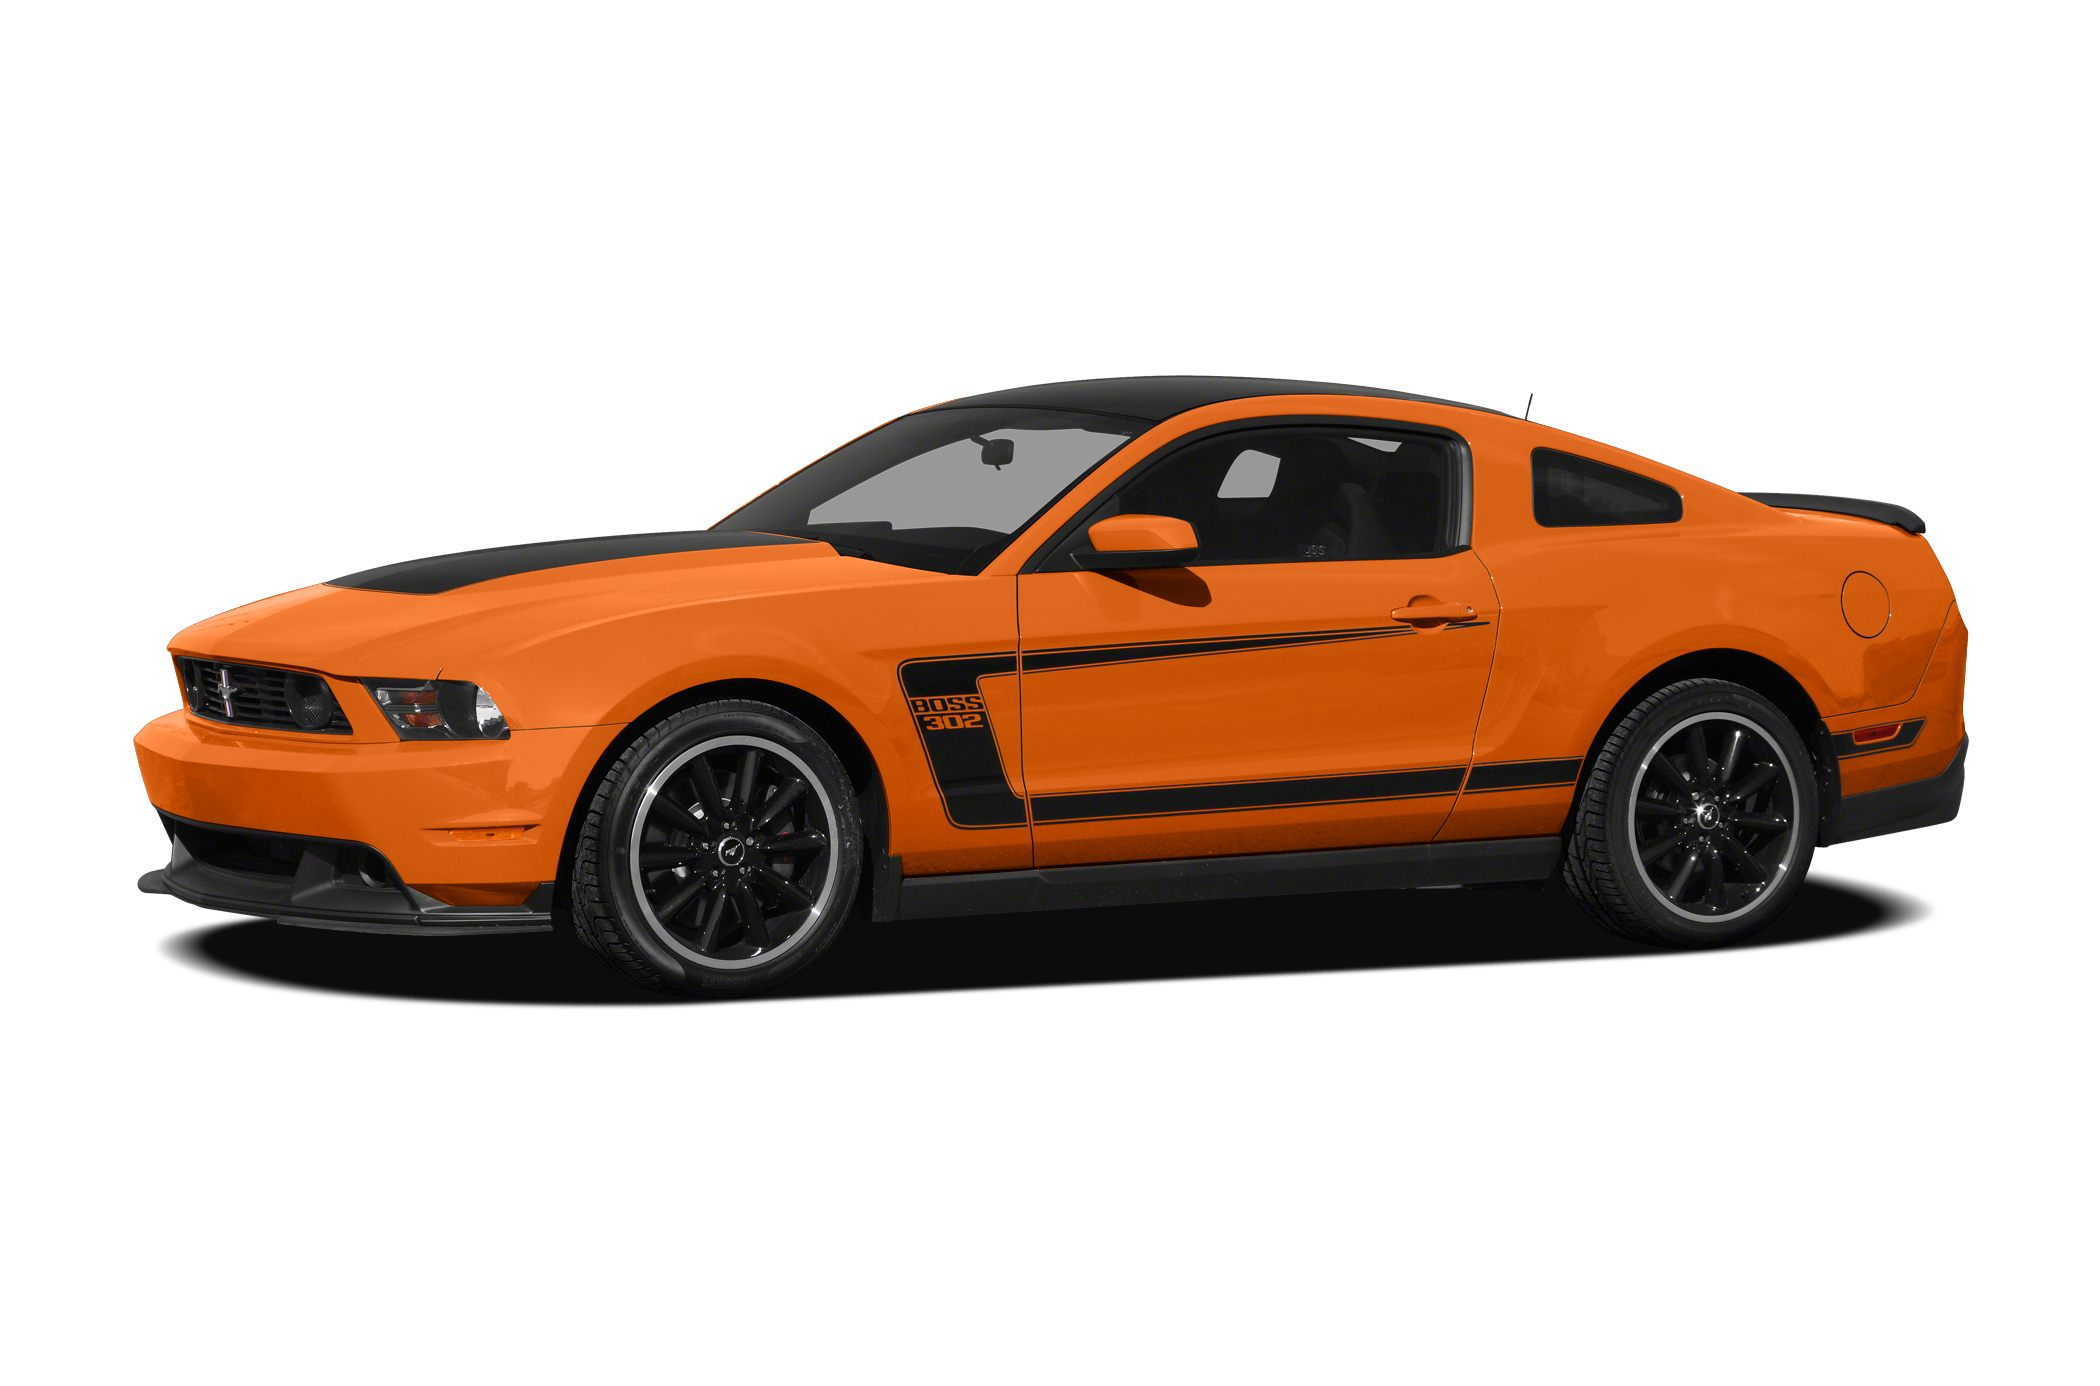 2012 Ford Mustang Boss 302 Coupe for sale in Kilgore for $37,987 with 4,350 miles